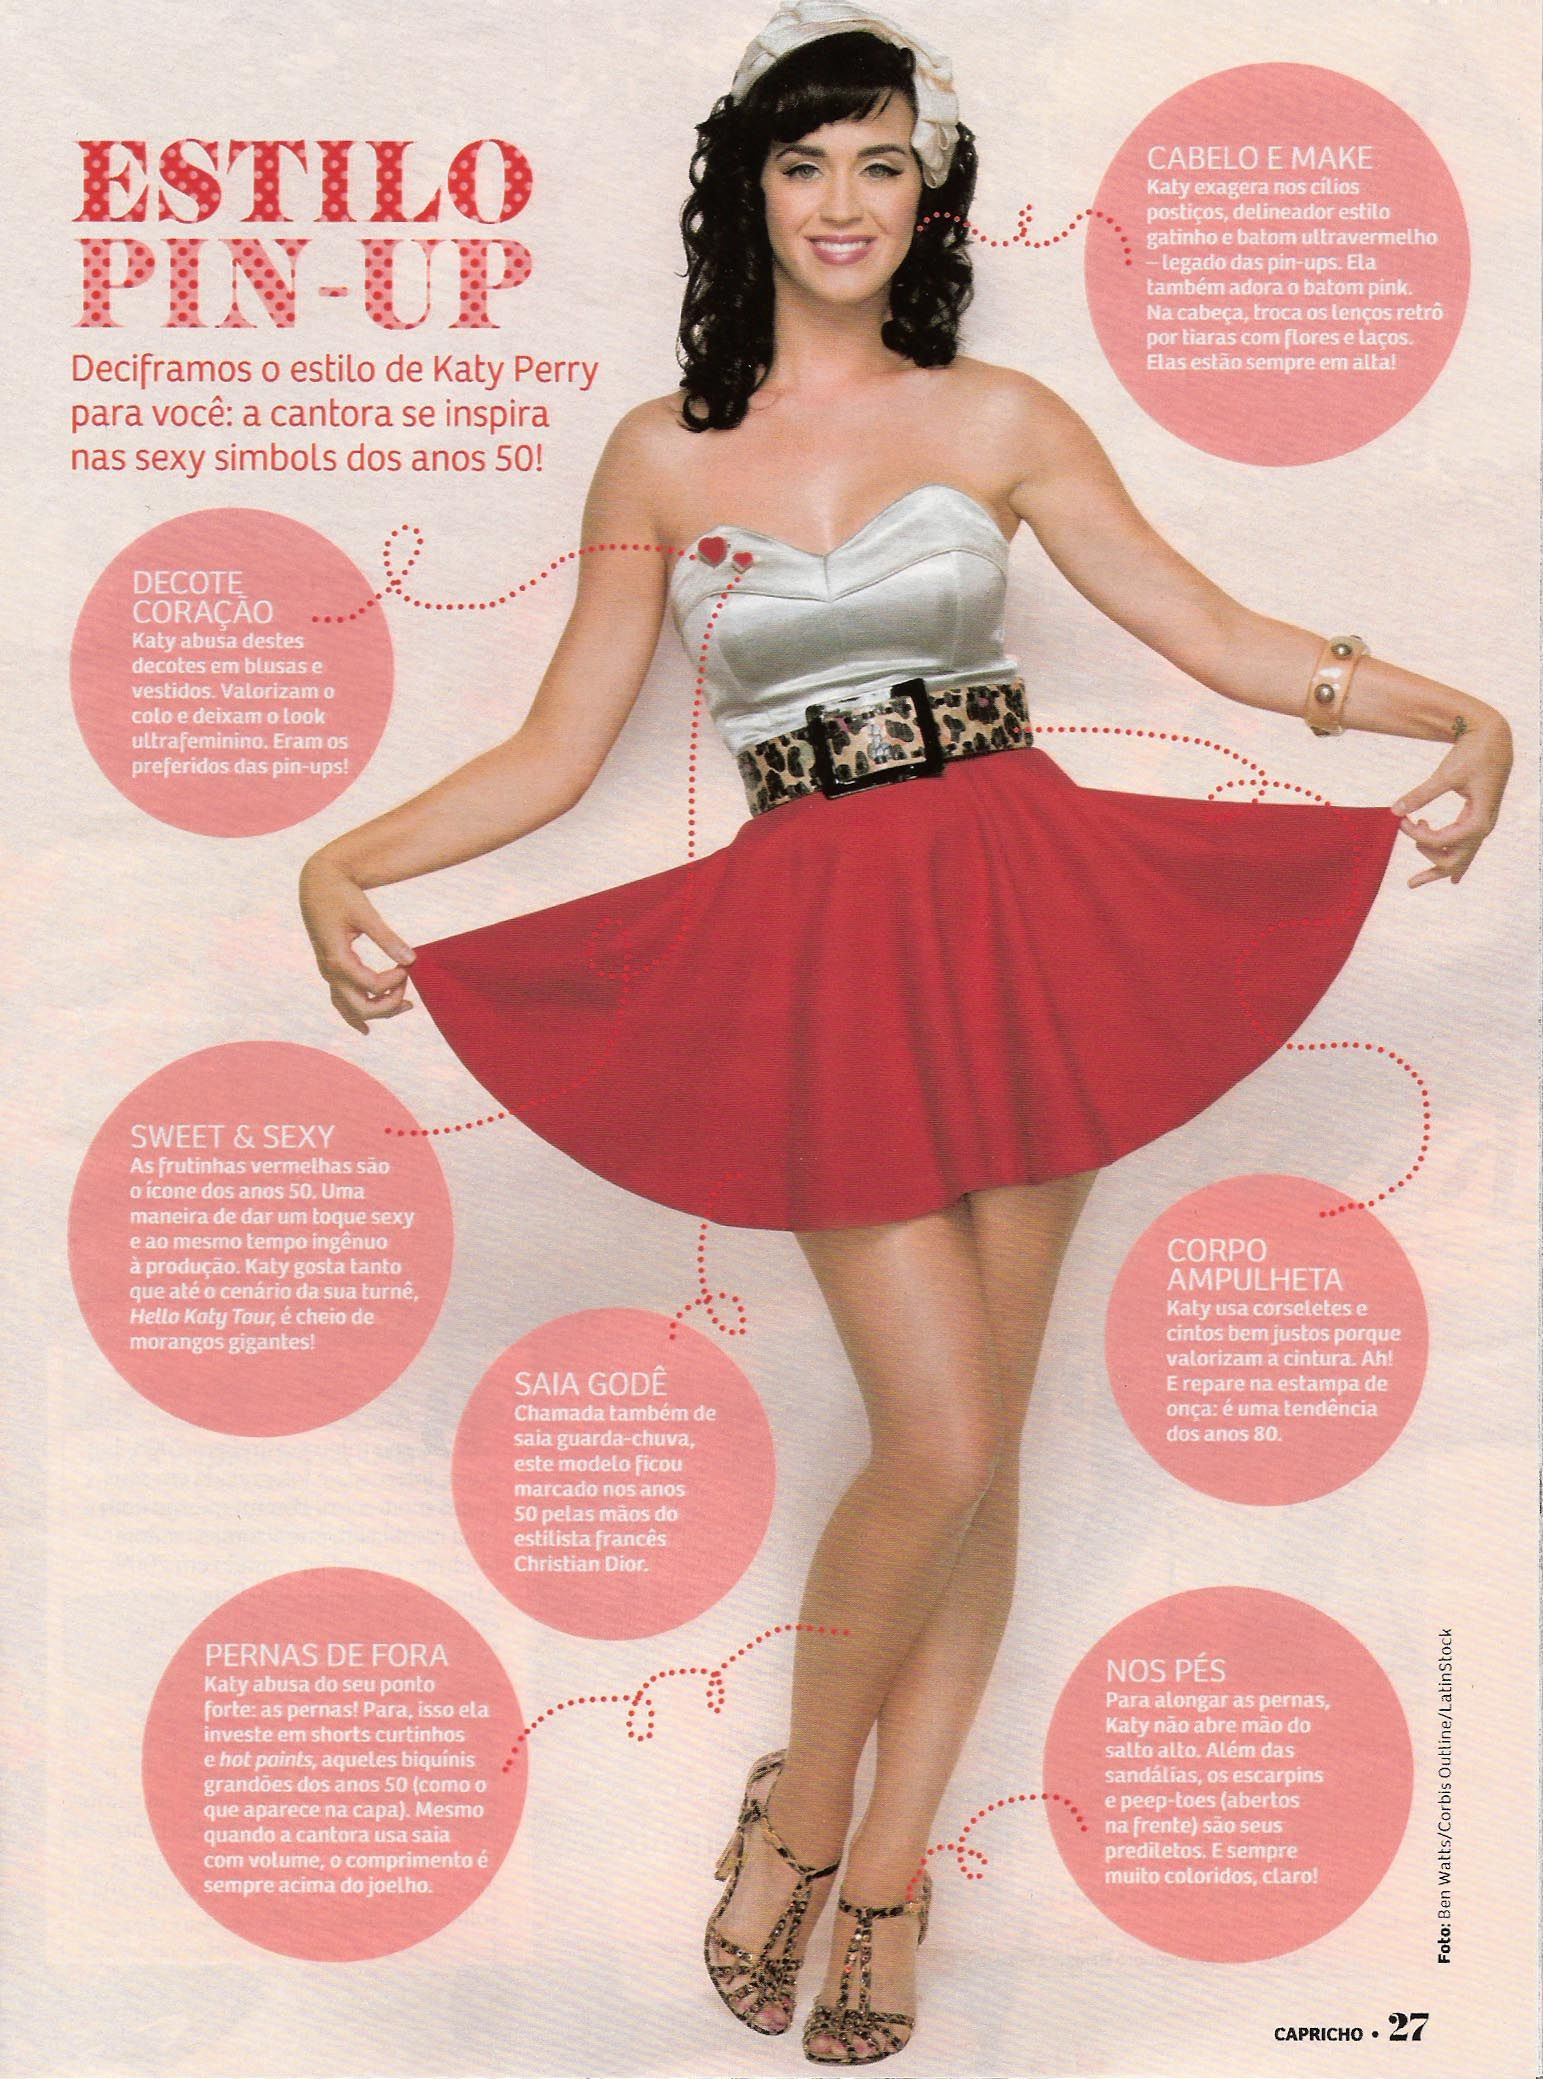 Vintage. | Katy perry, Moda and Lingerie